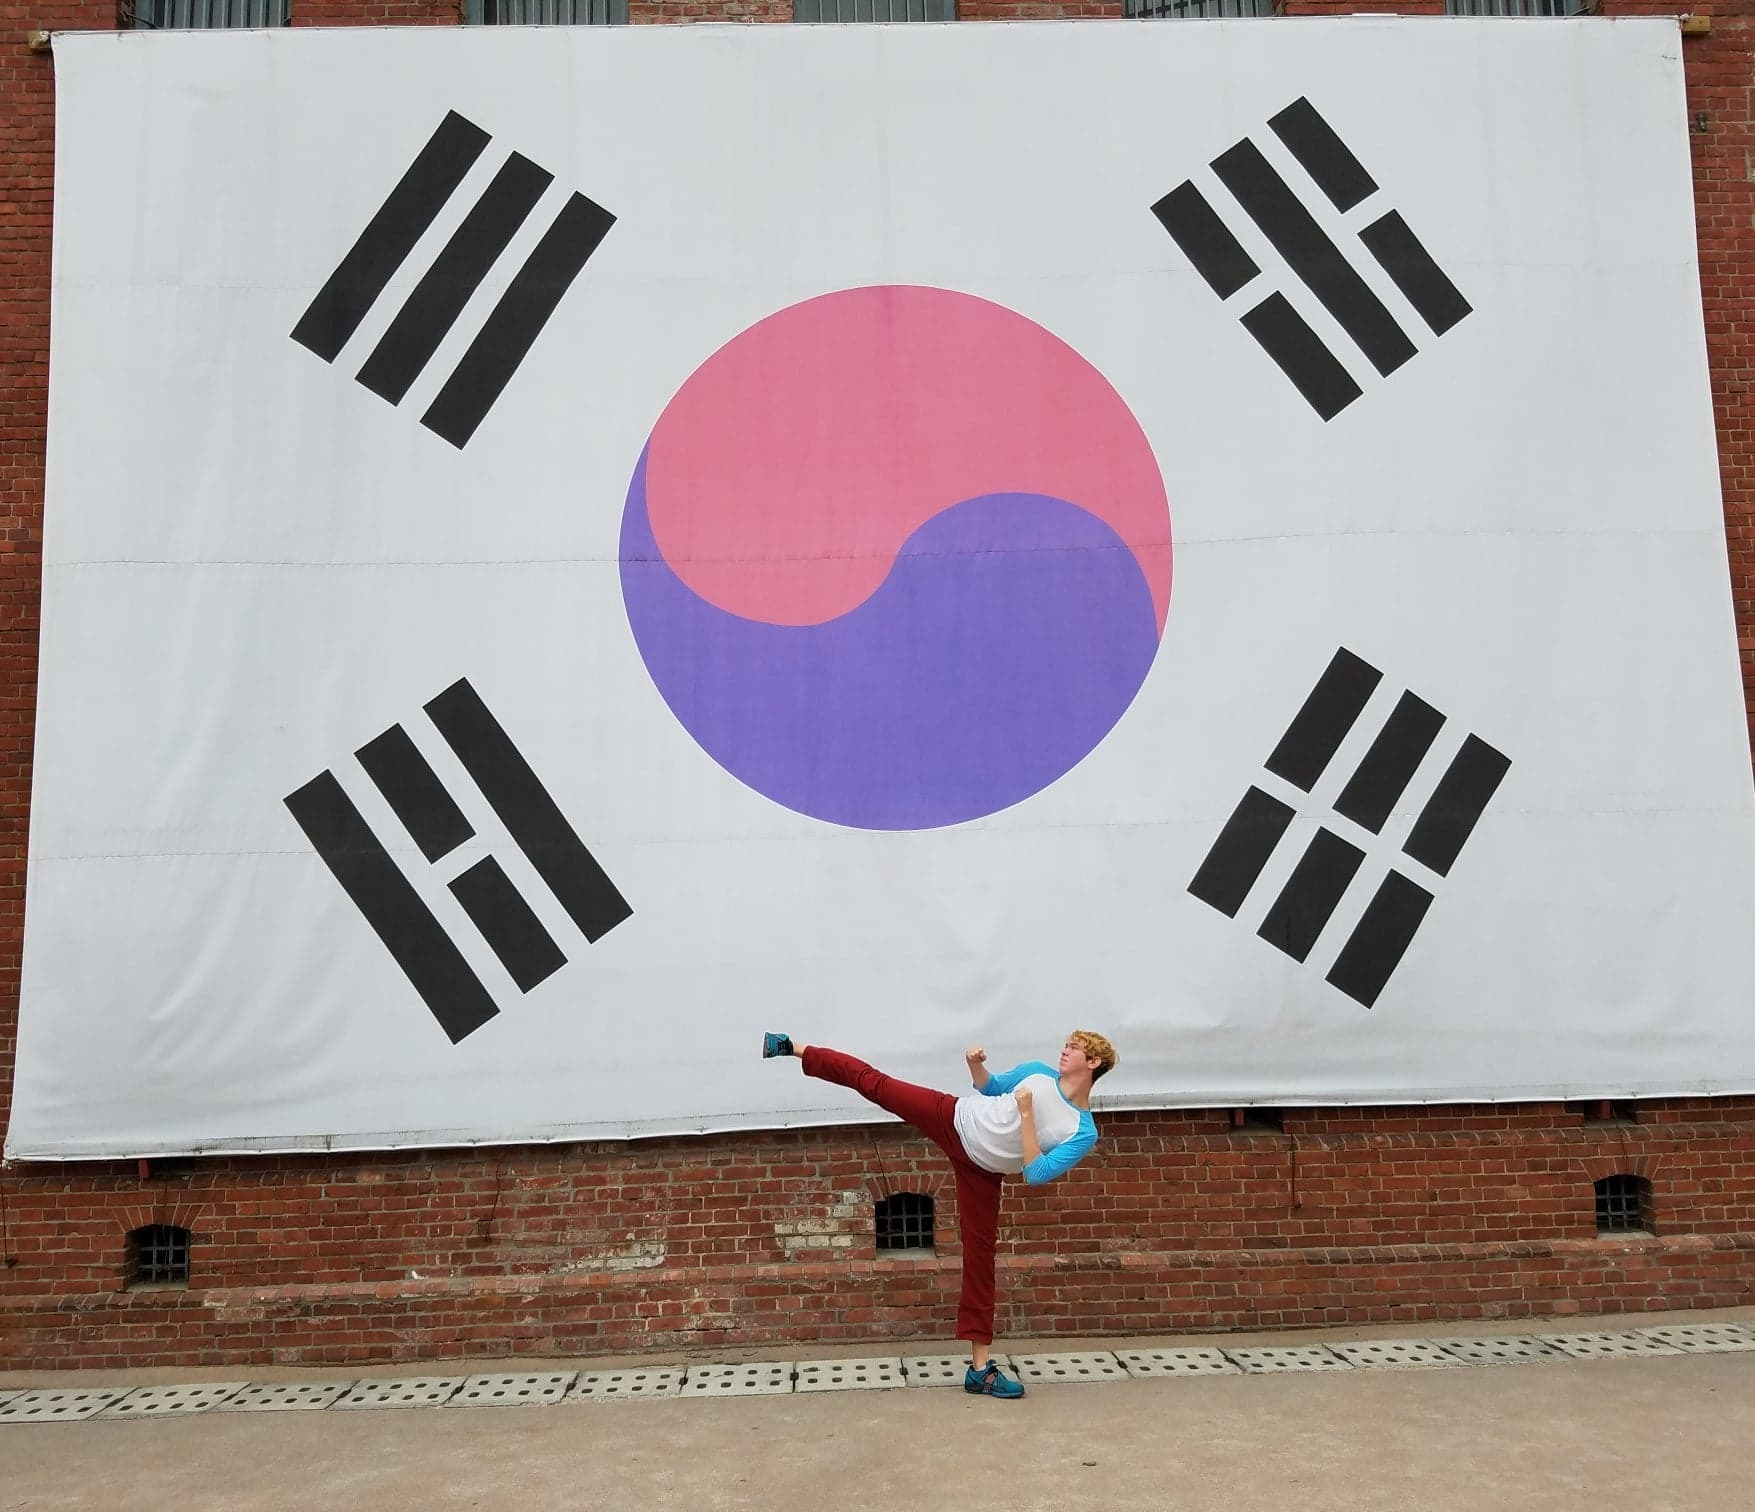 Taekwondo In South Korea